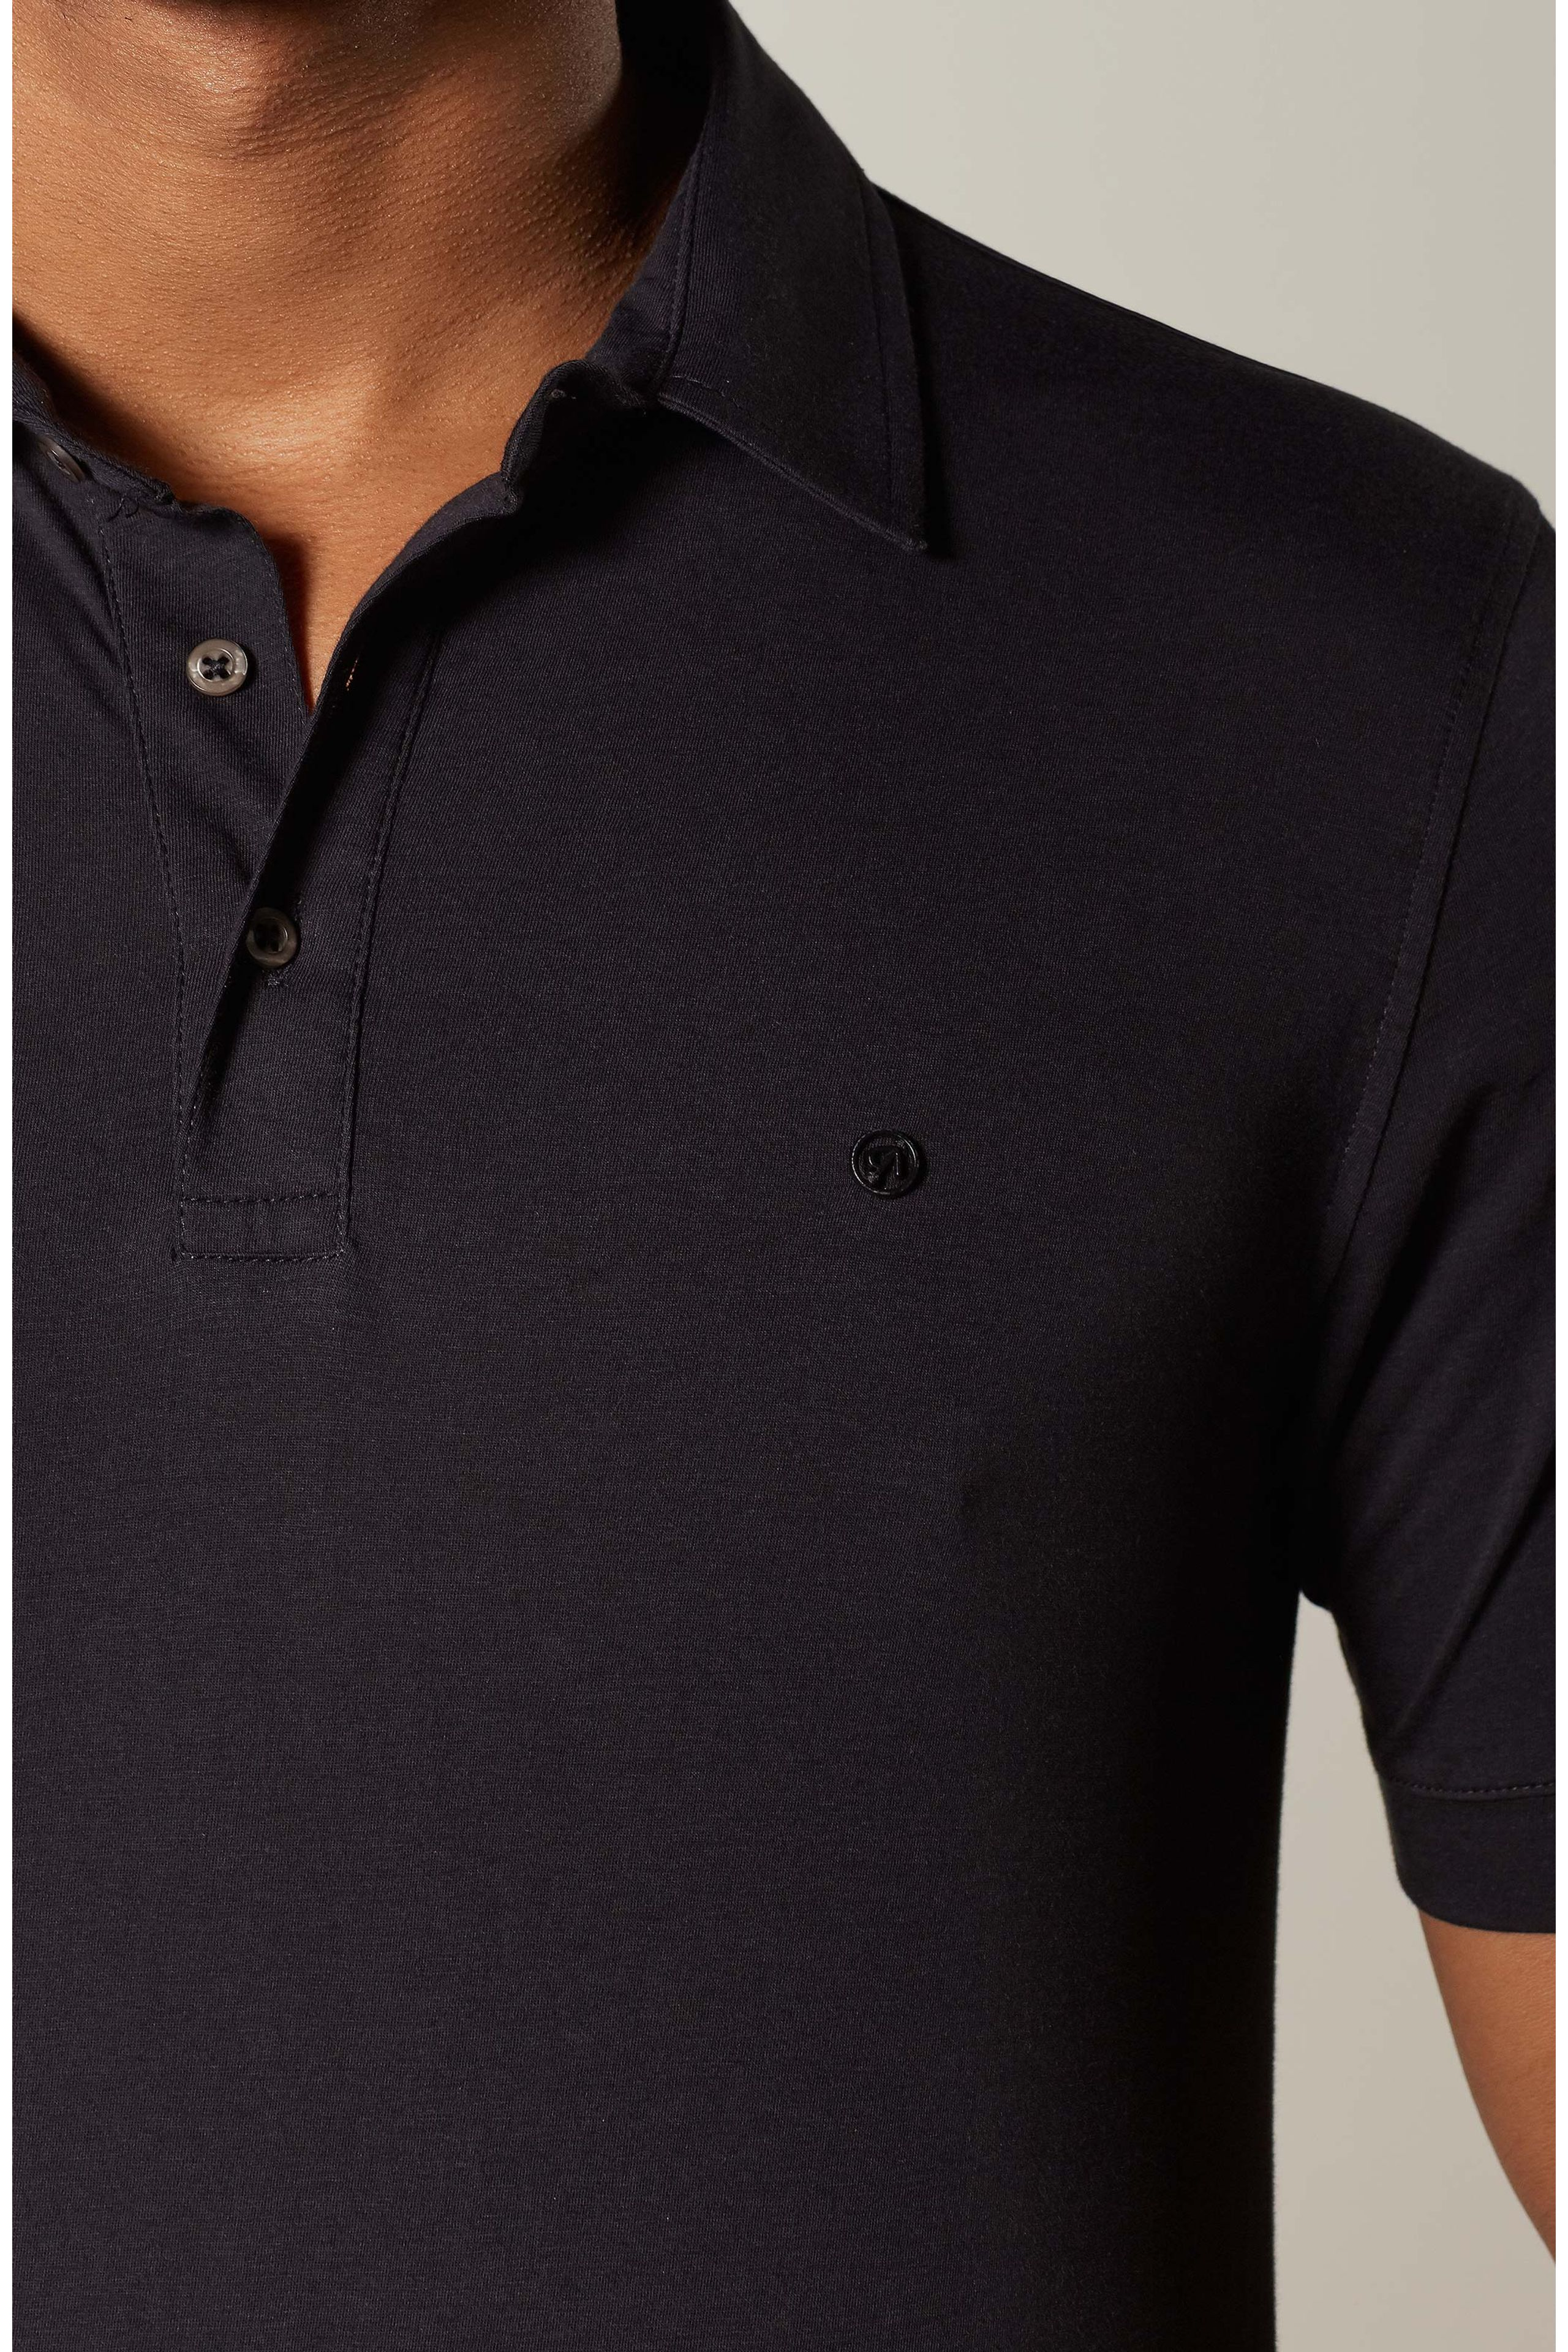 8320ICV00090_987_4-POLO-MC-PIMA-COTTON